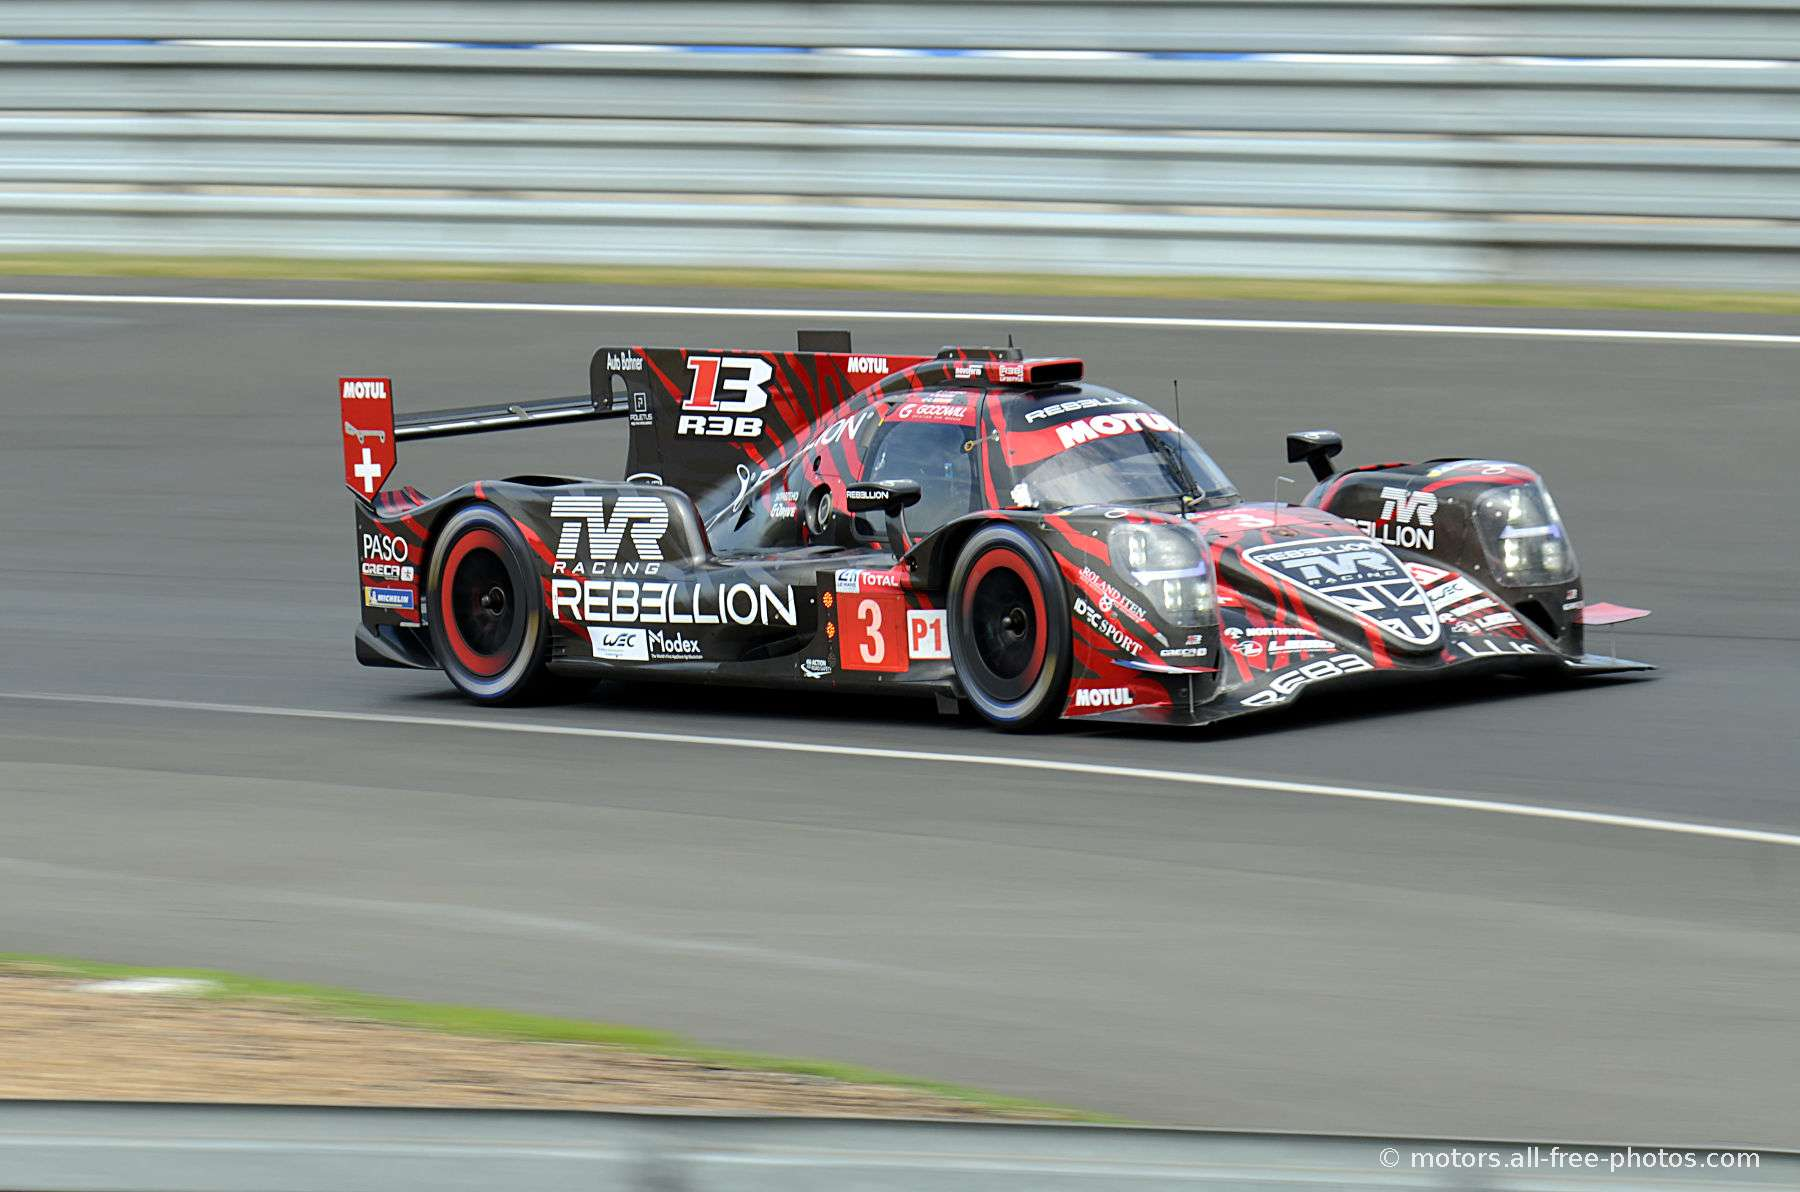 Rebellion R13-Gibson - Team Rebellion Racing